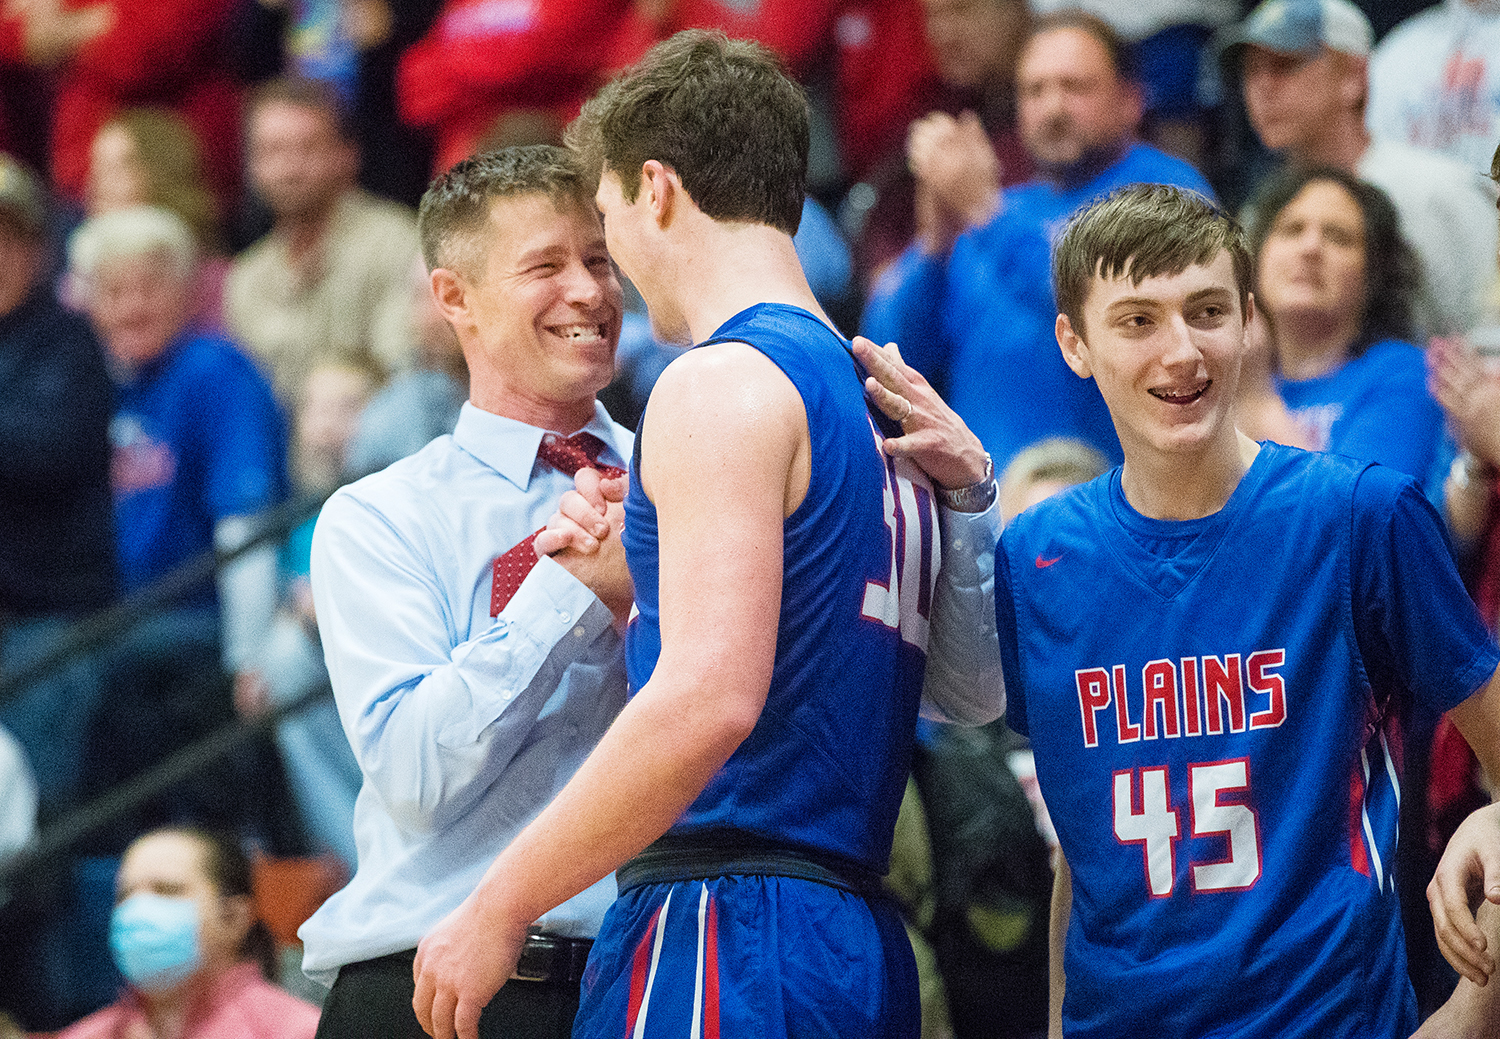 Pleasant Plains head coach Kyle Weber celebrates with Pleasant Plains' Joel Niermann during the Boys Class 2A Riverton Sectional at Riverton High School Friday, March 1, 2019. [Ted Schurter/The State Journal-Register]